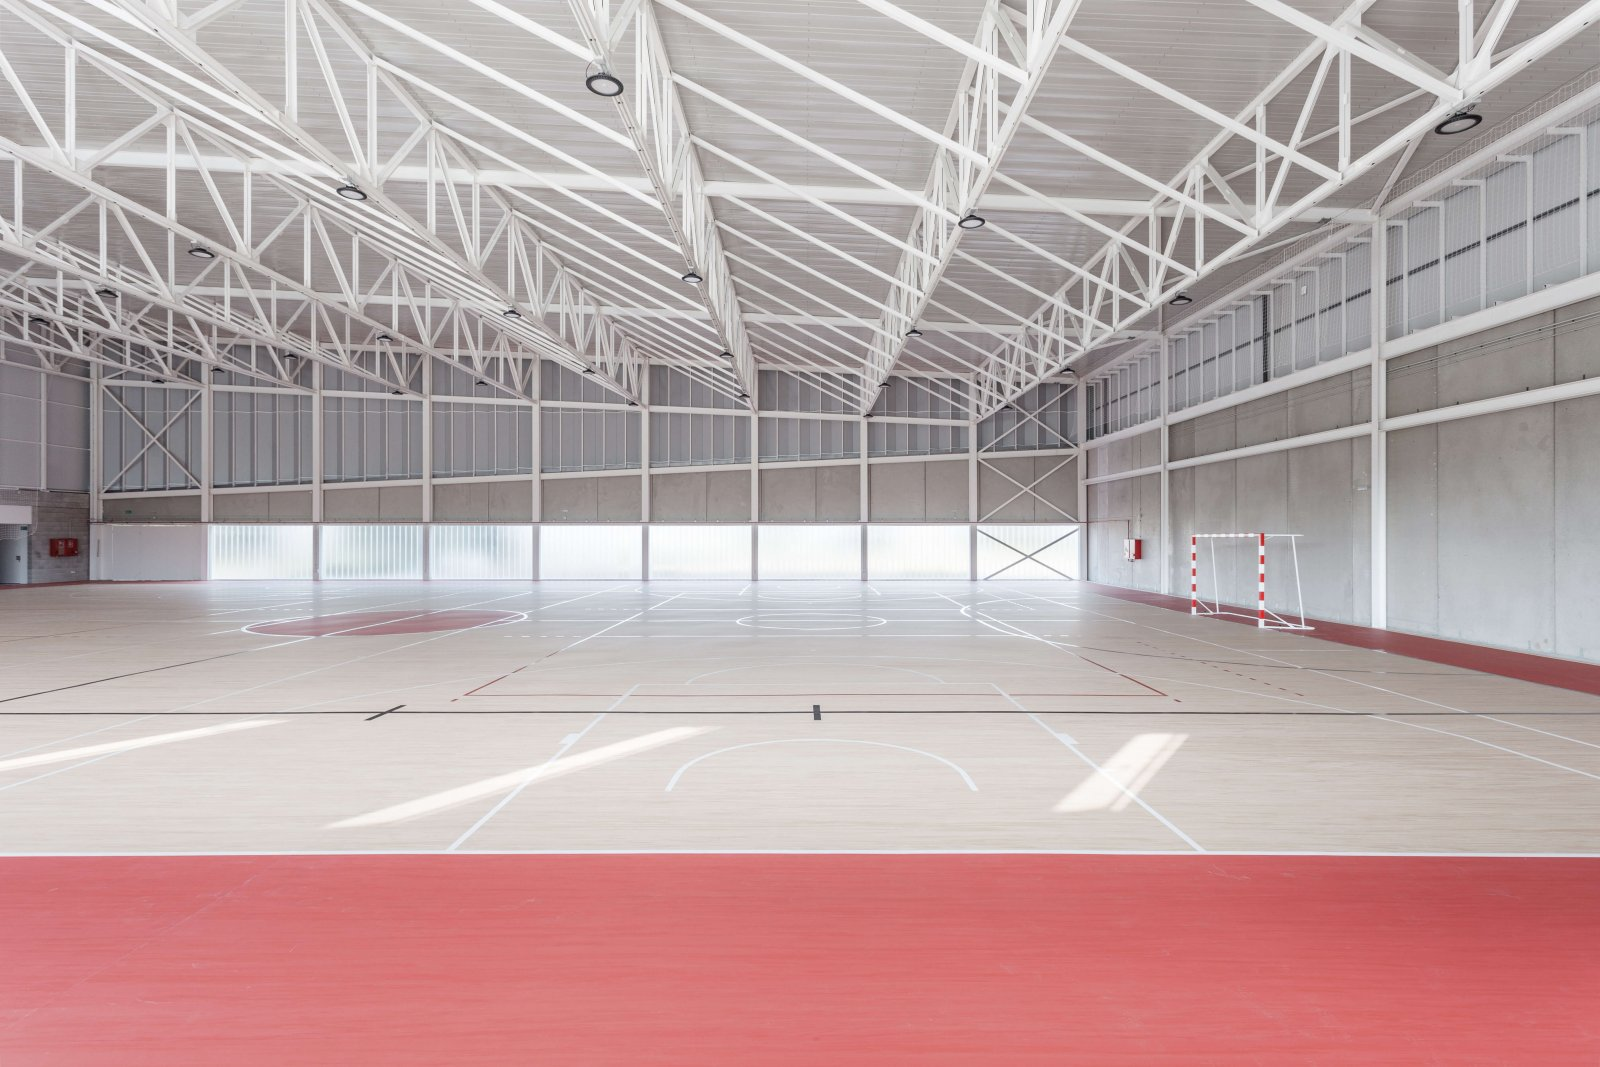 Another view of the sports court with parquet floors marked for basketball and football of the pavilion son ferragut